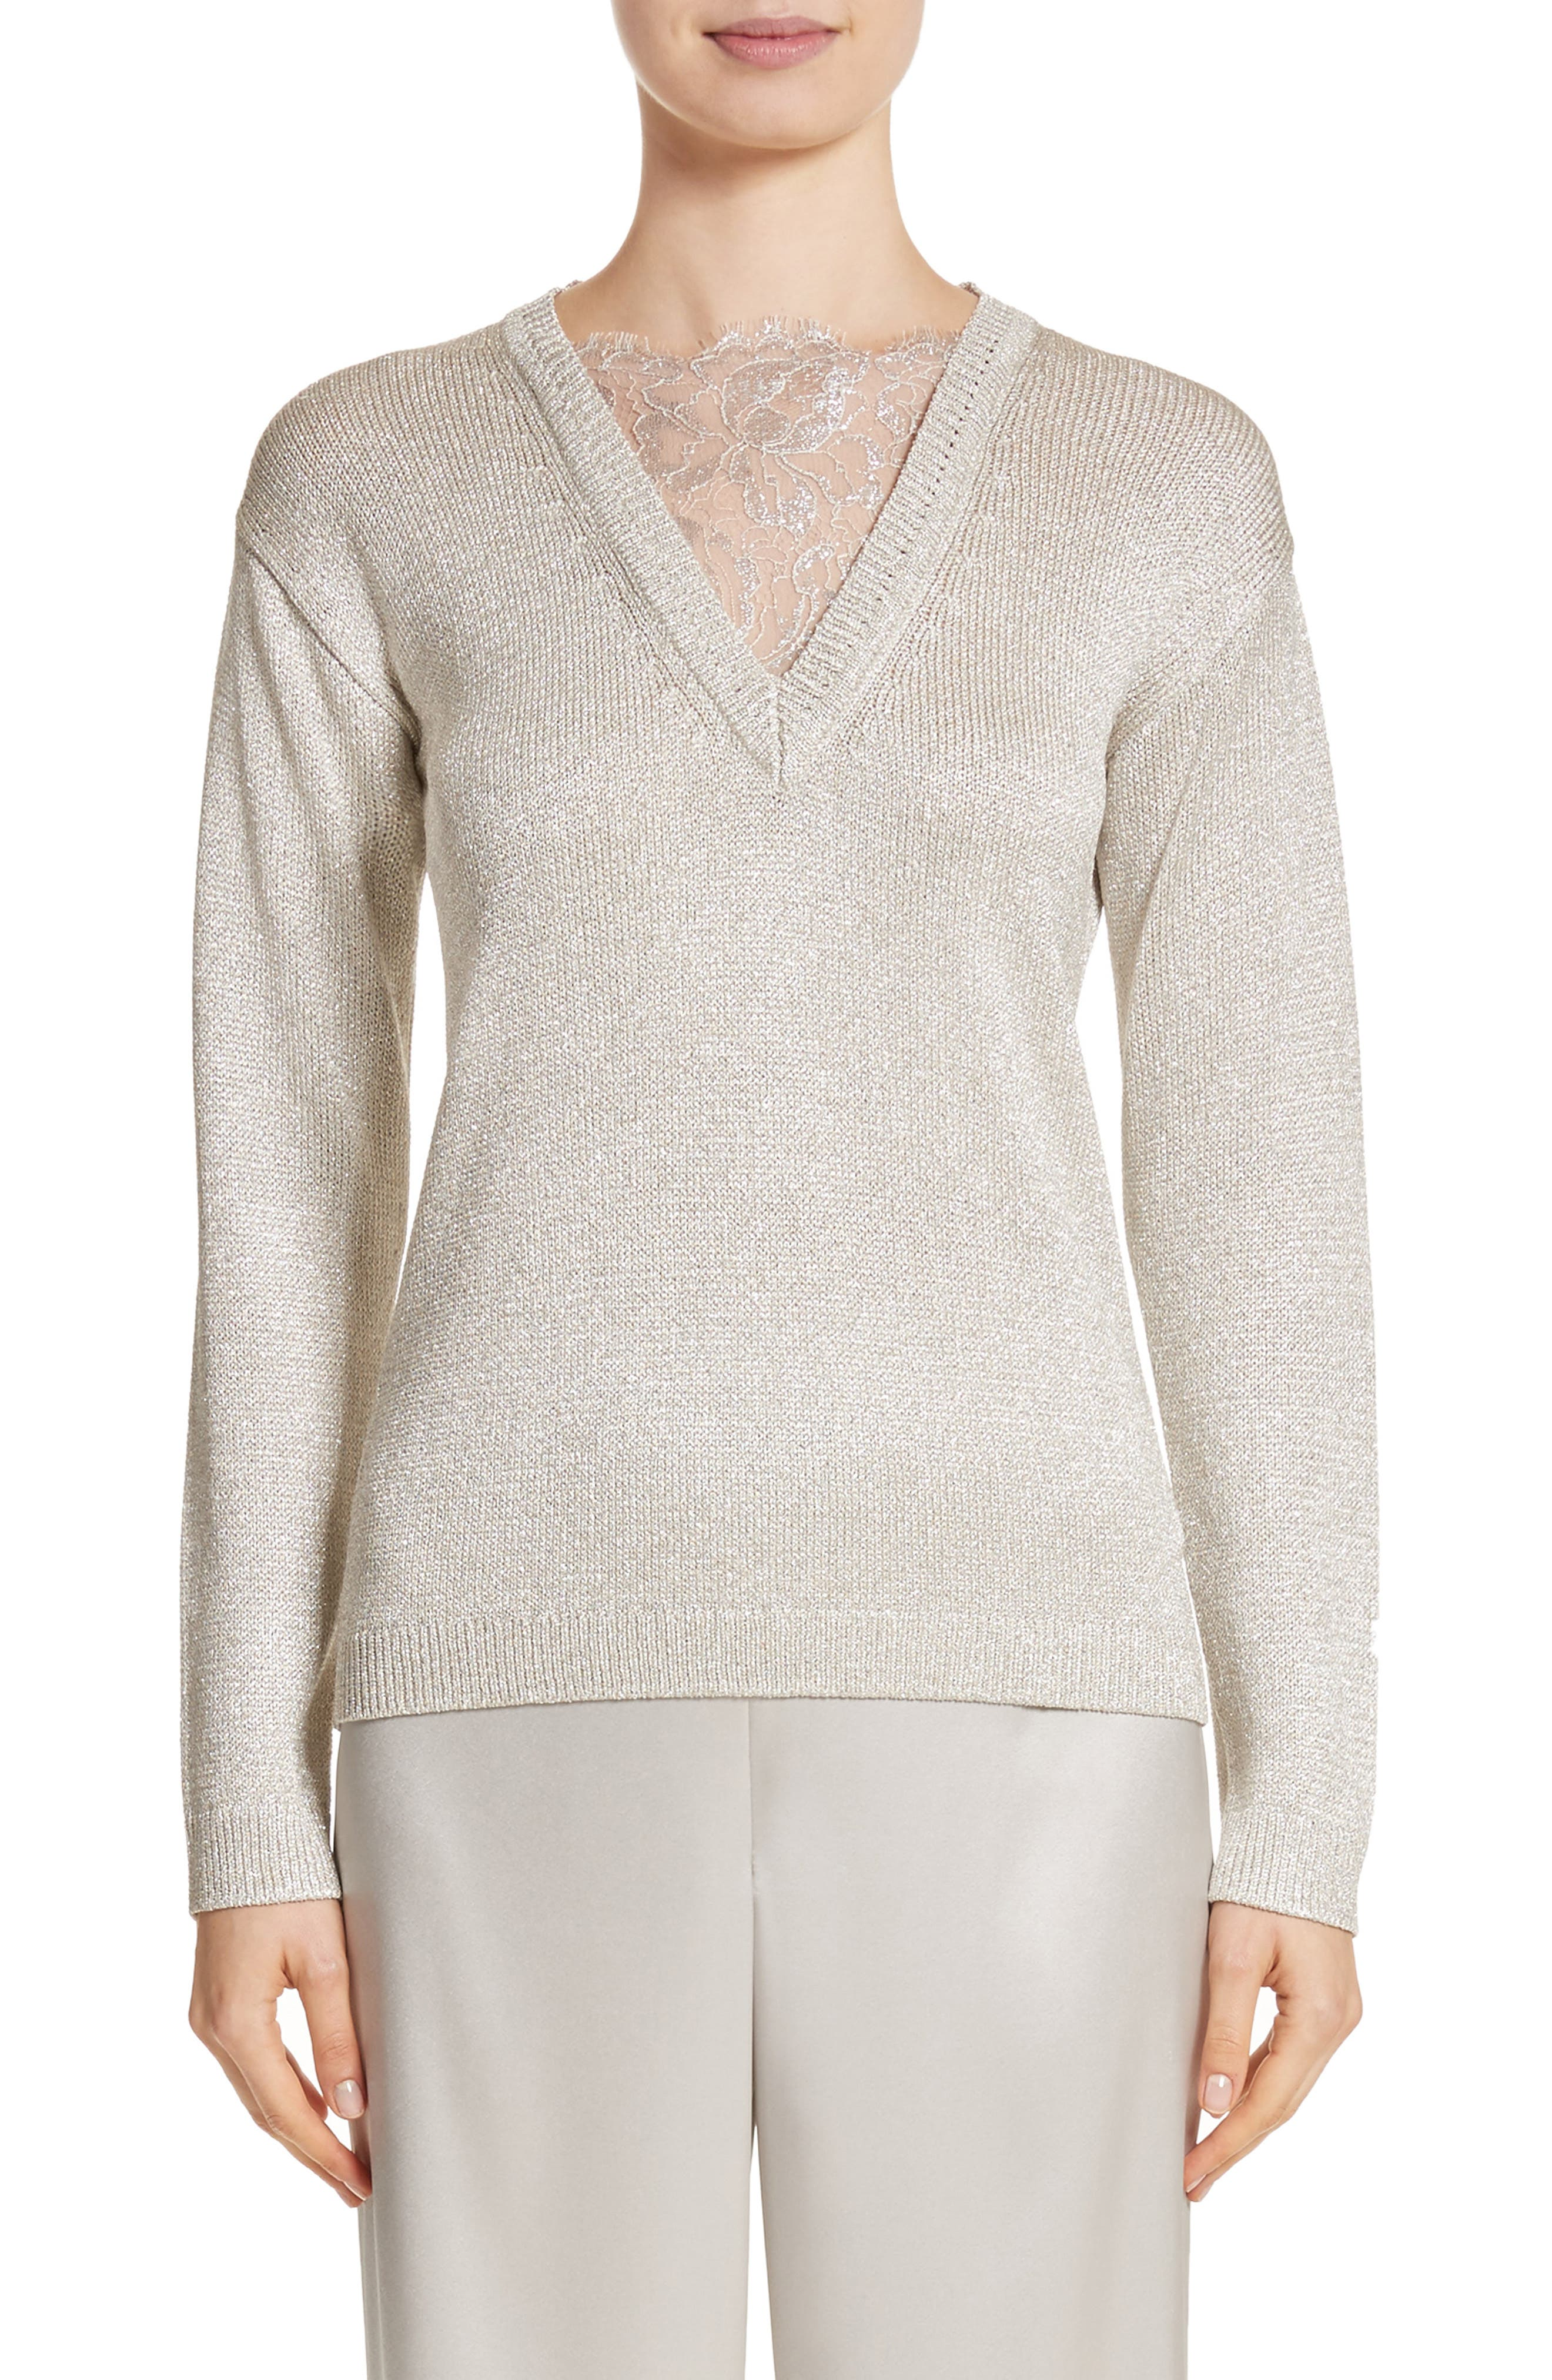 St John Collection Metallic Jersey Knit Sweater,                         Main,                         color, 020